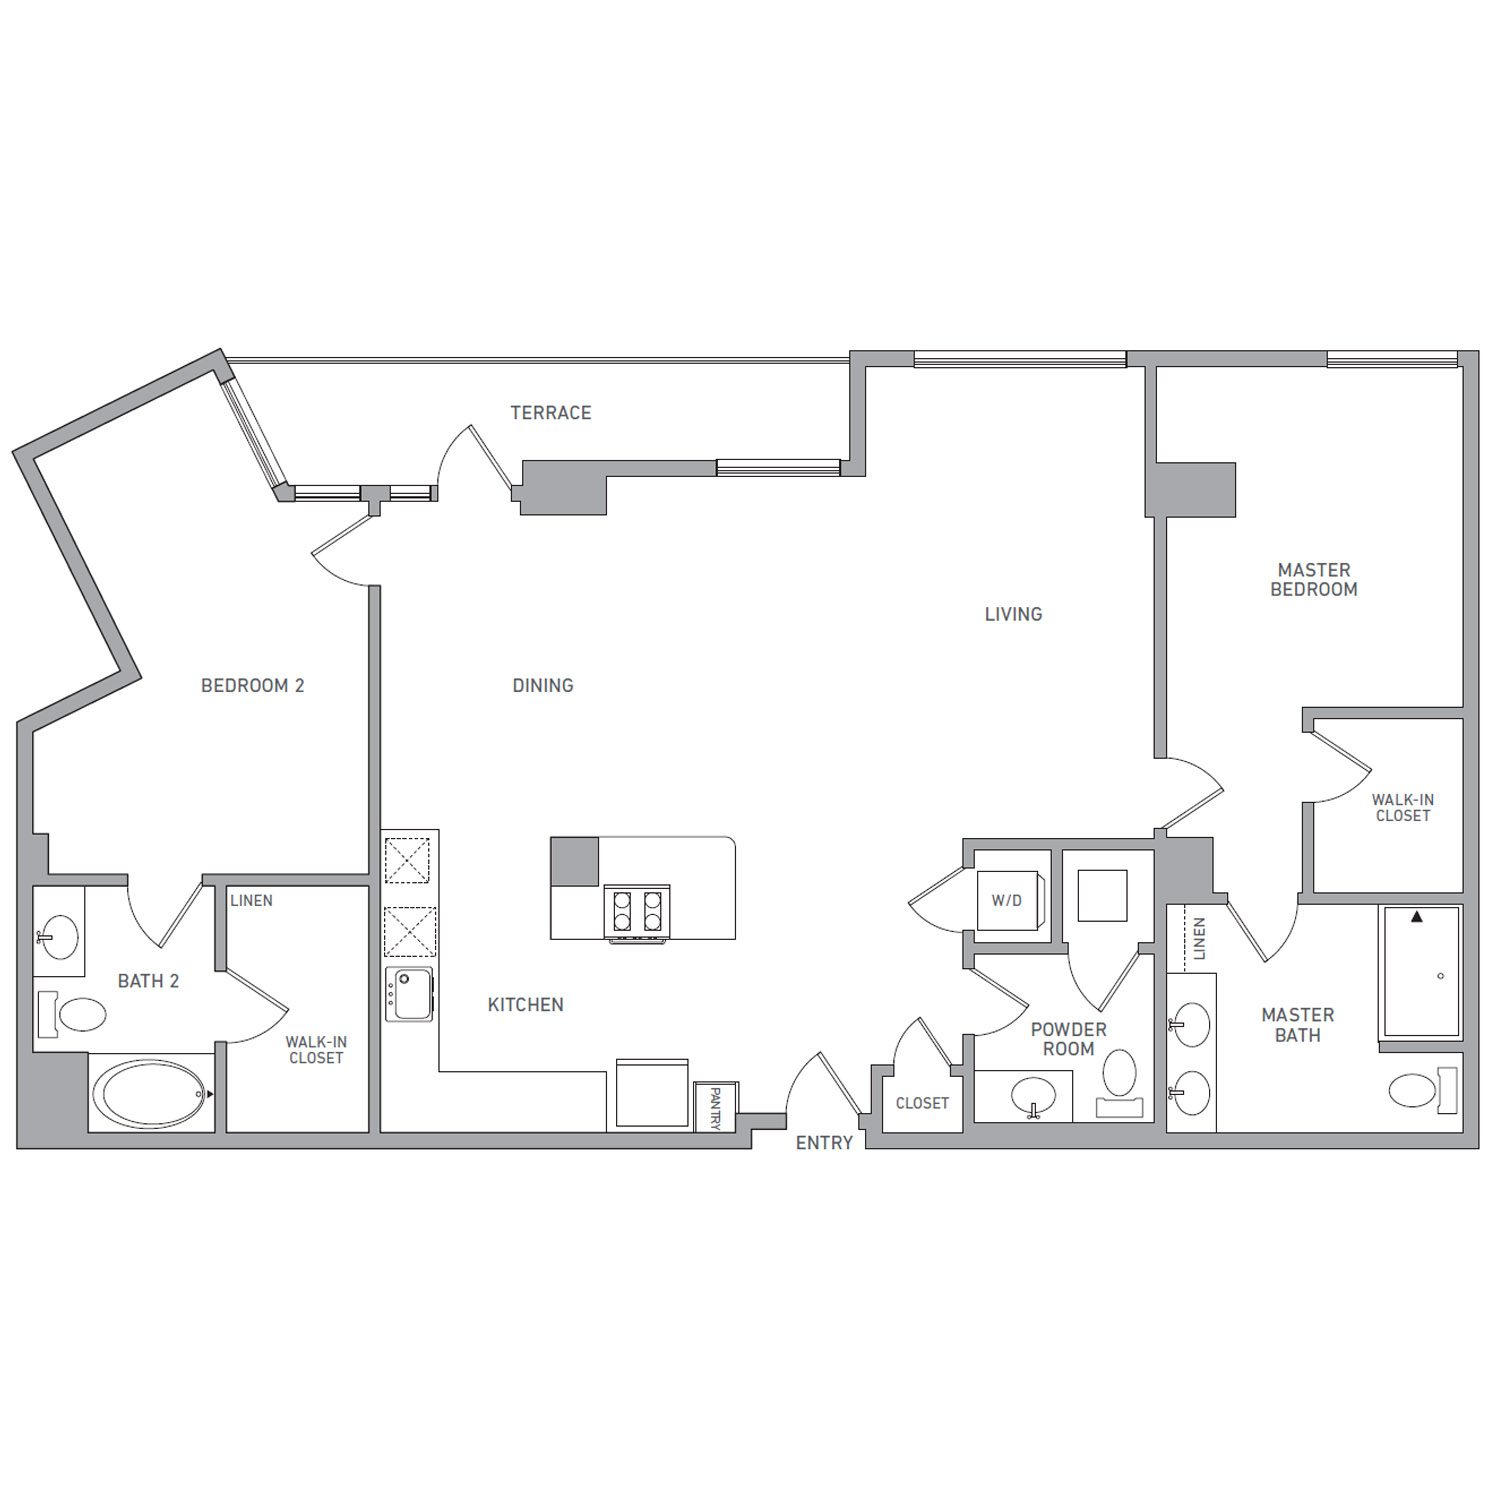 P H 217 floor plan diagram. Penthouse apartment with two bedrooms, two bathrooms, a powder room, an open kitchen dining and living area, a terrace, and a washer dryer.